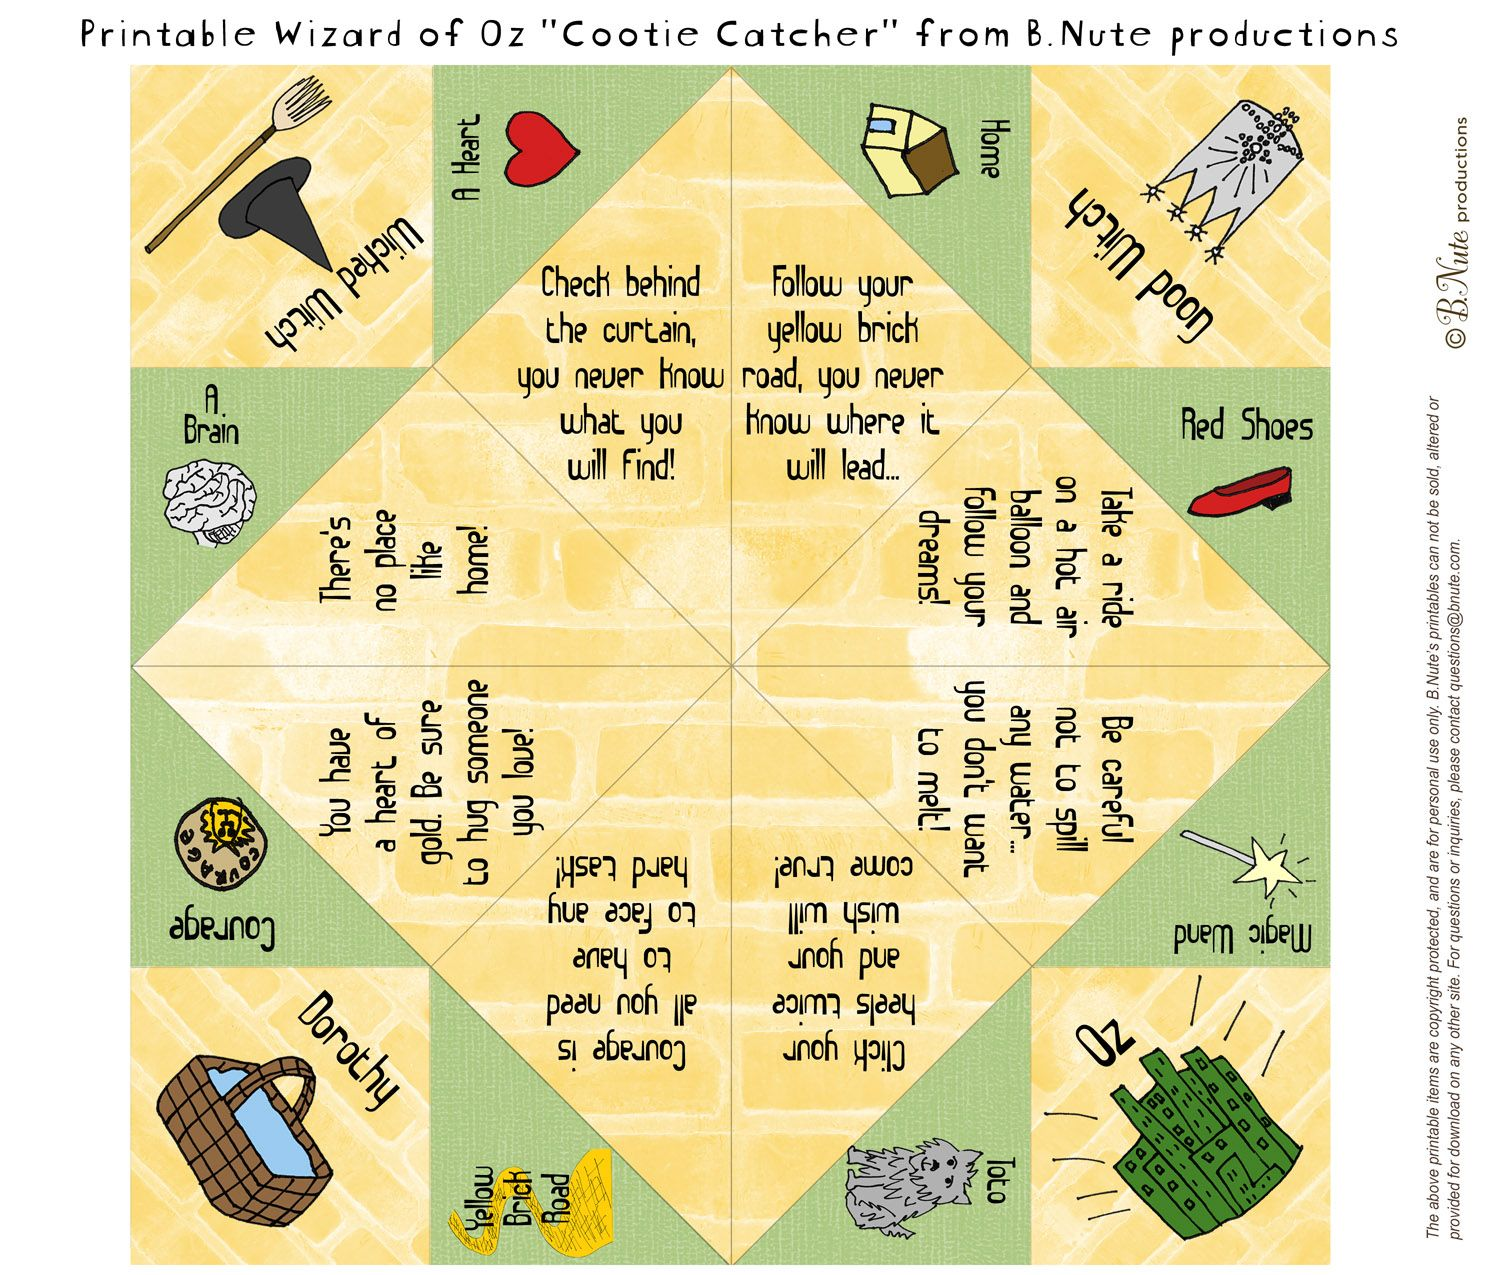 Free Printable Wizard Of Oz Cootie Catcher Fortune